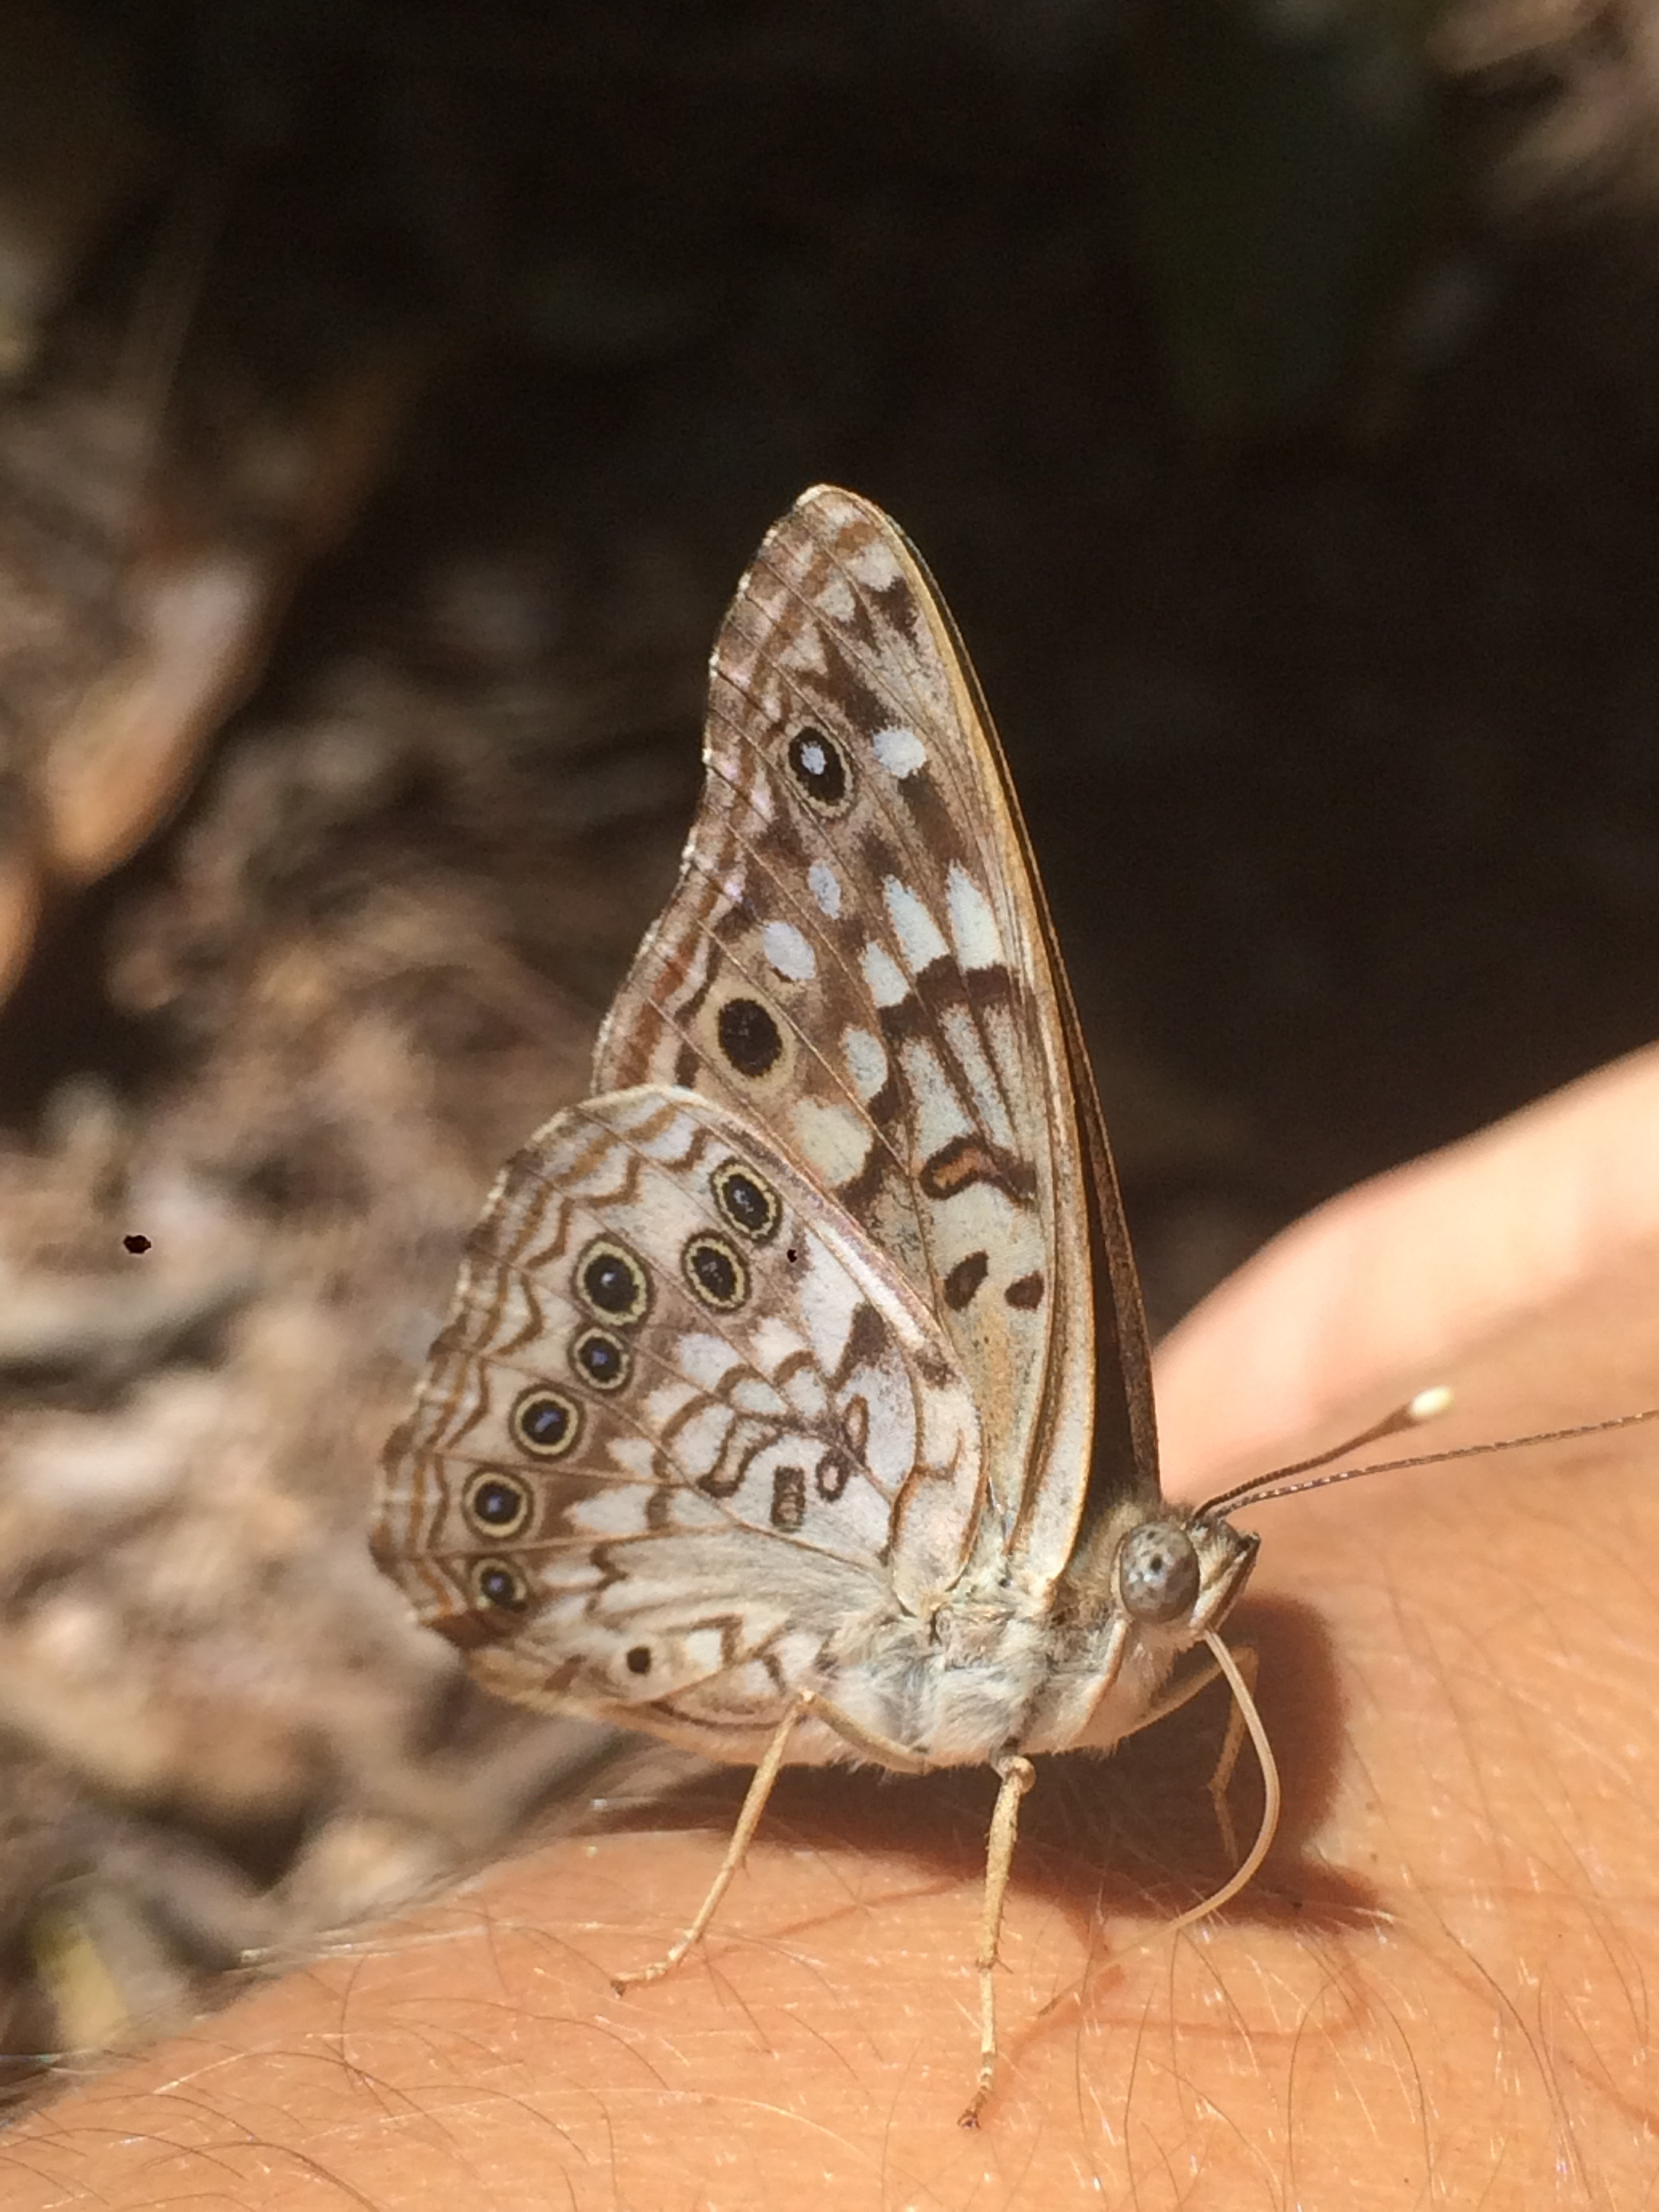 The Hackberry Emperor